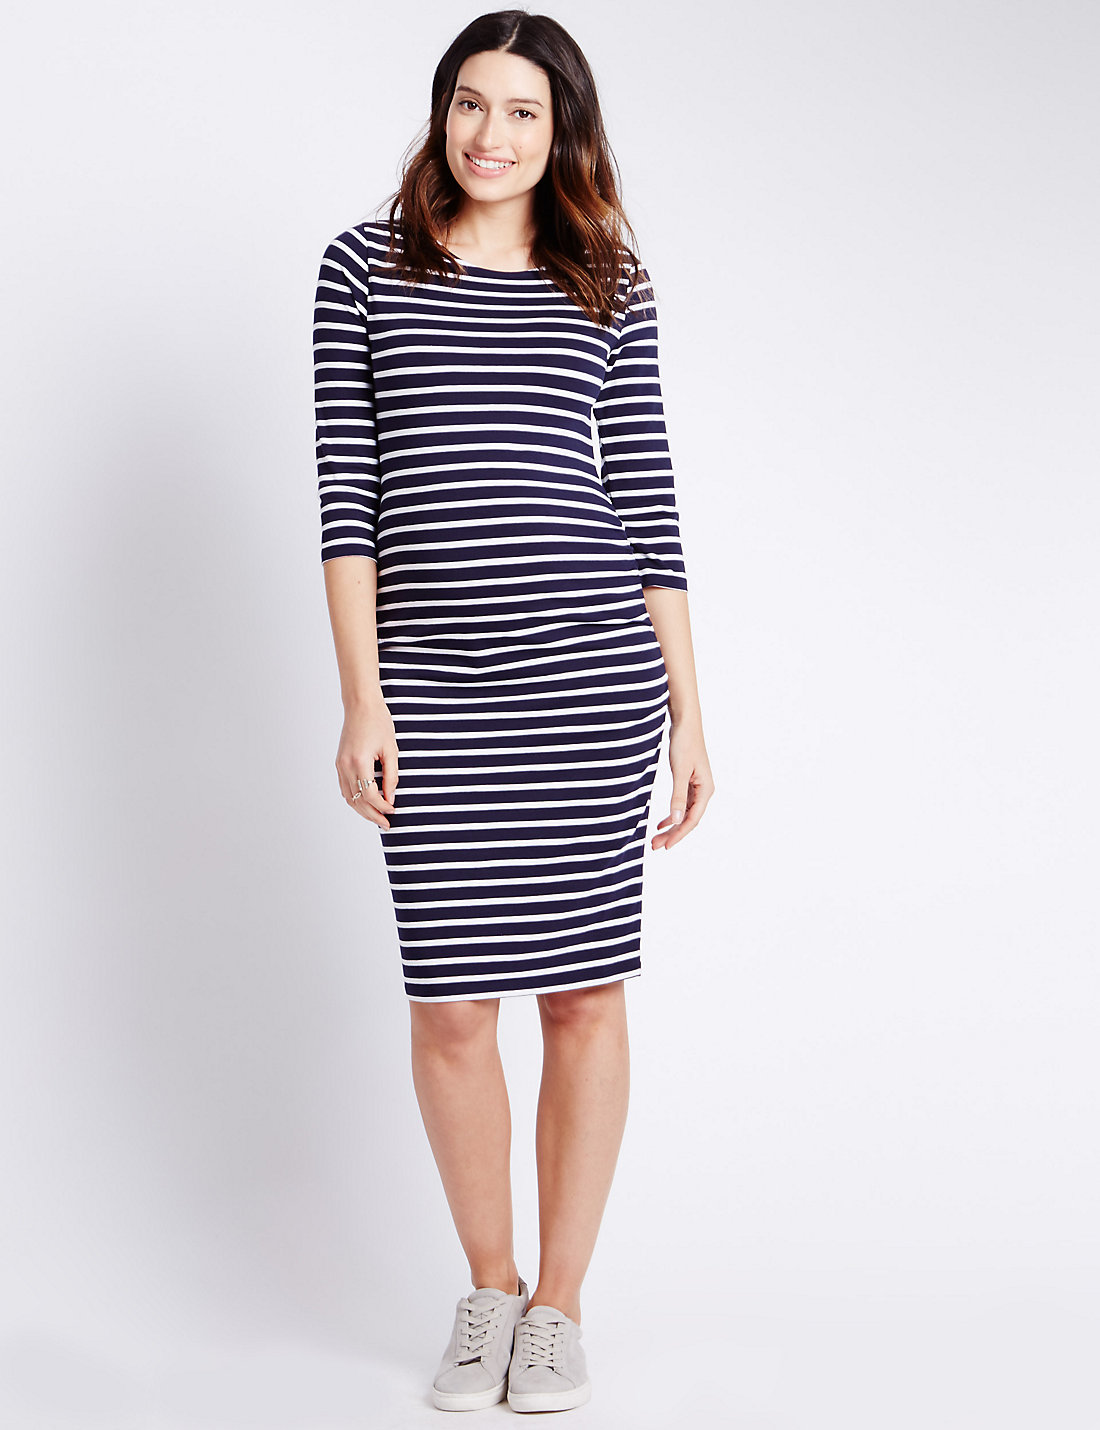 Best Maternity Dresses To Show Off Your Bump - The Lucy Edit